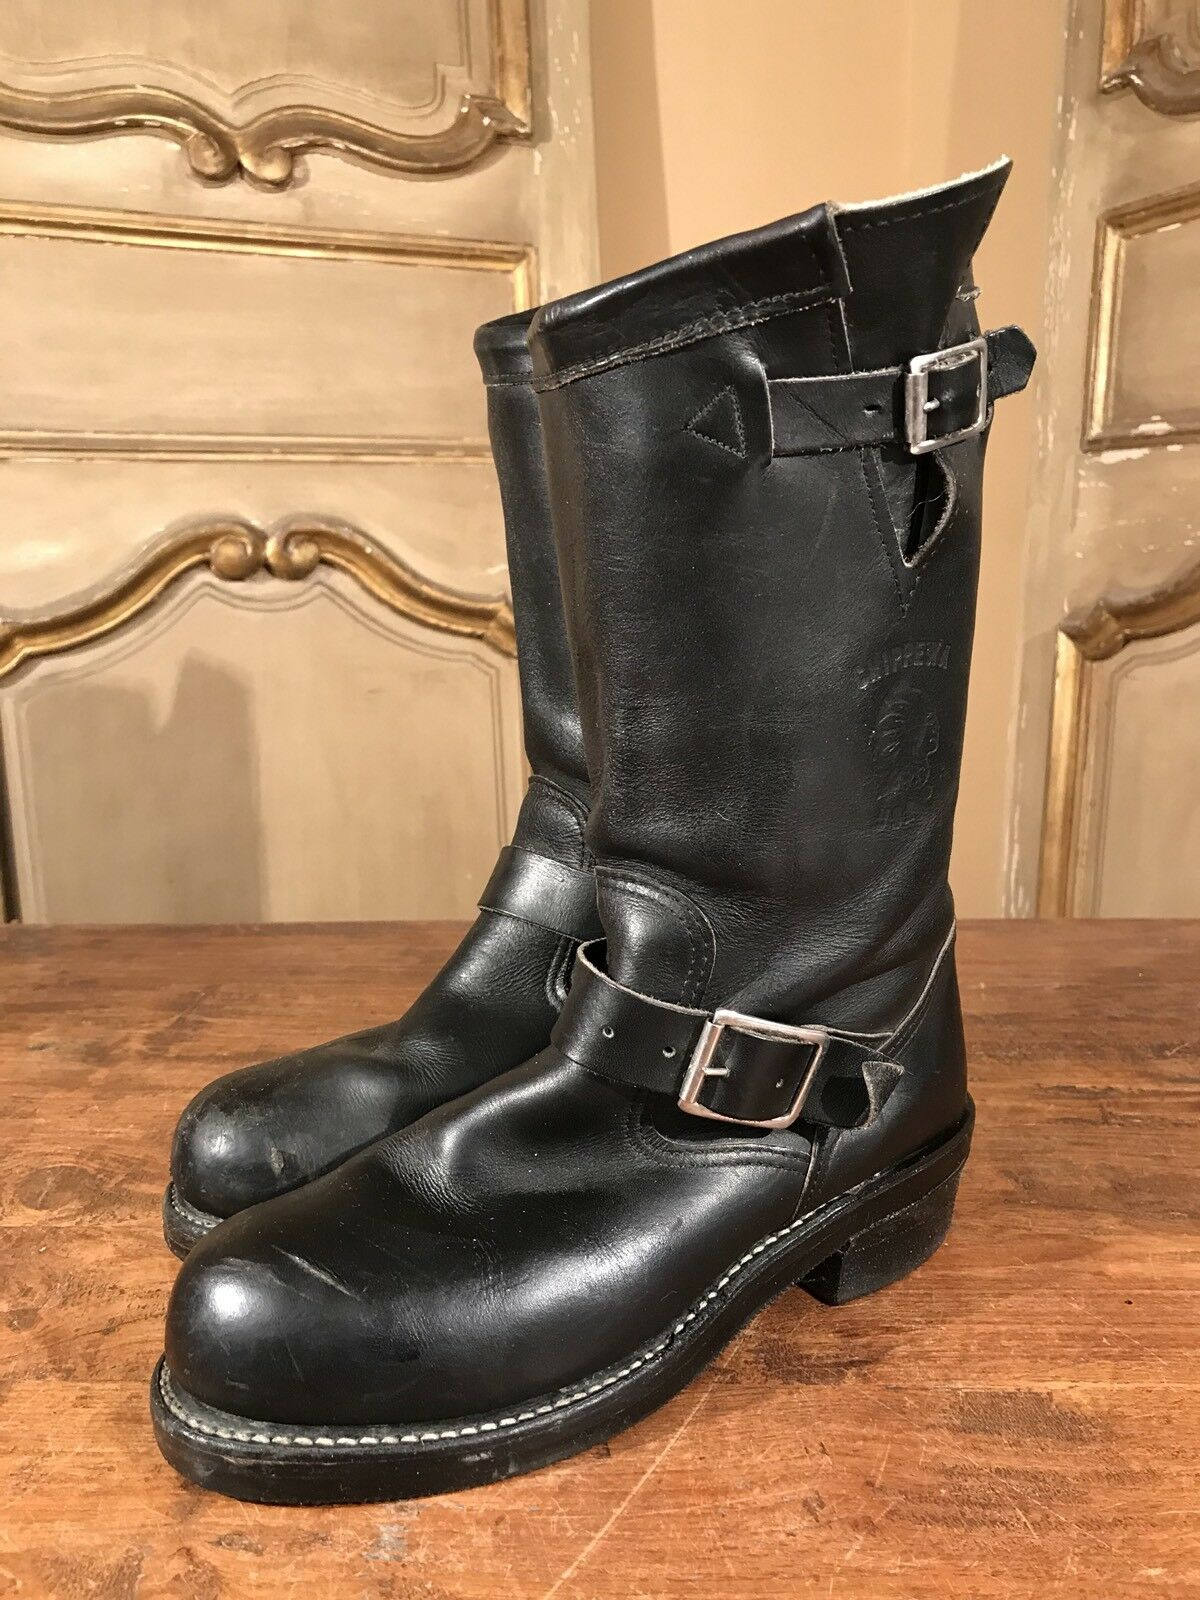 Vintage Chippewa Lineman Engineering Campus Motorcycle Boots Women's 6.5 M